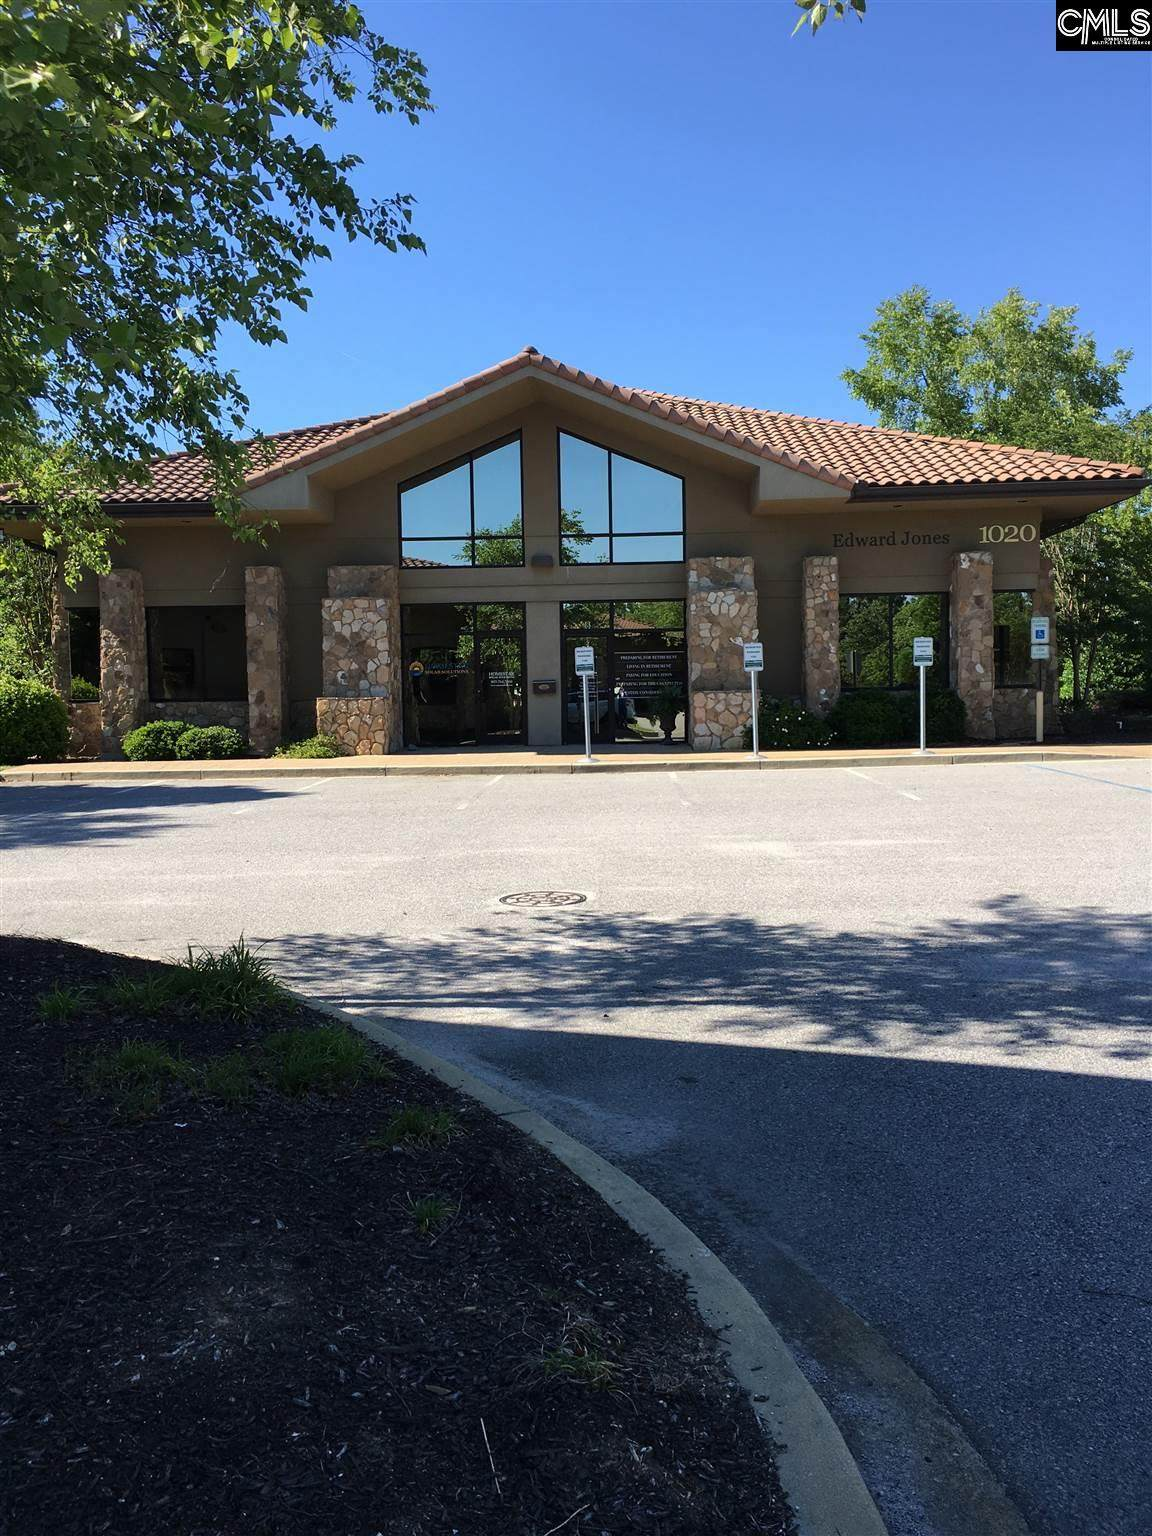 1020 Wildewood Centre A - Photo 1